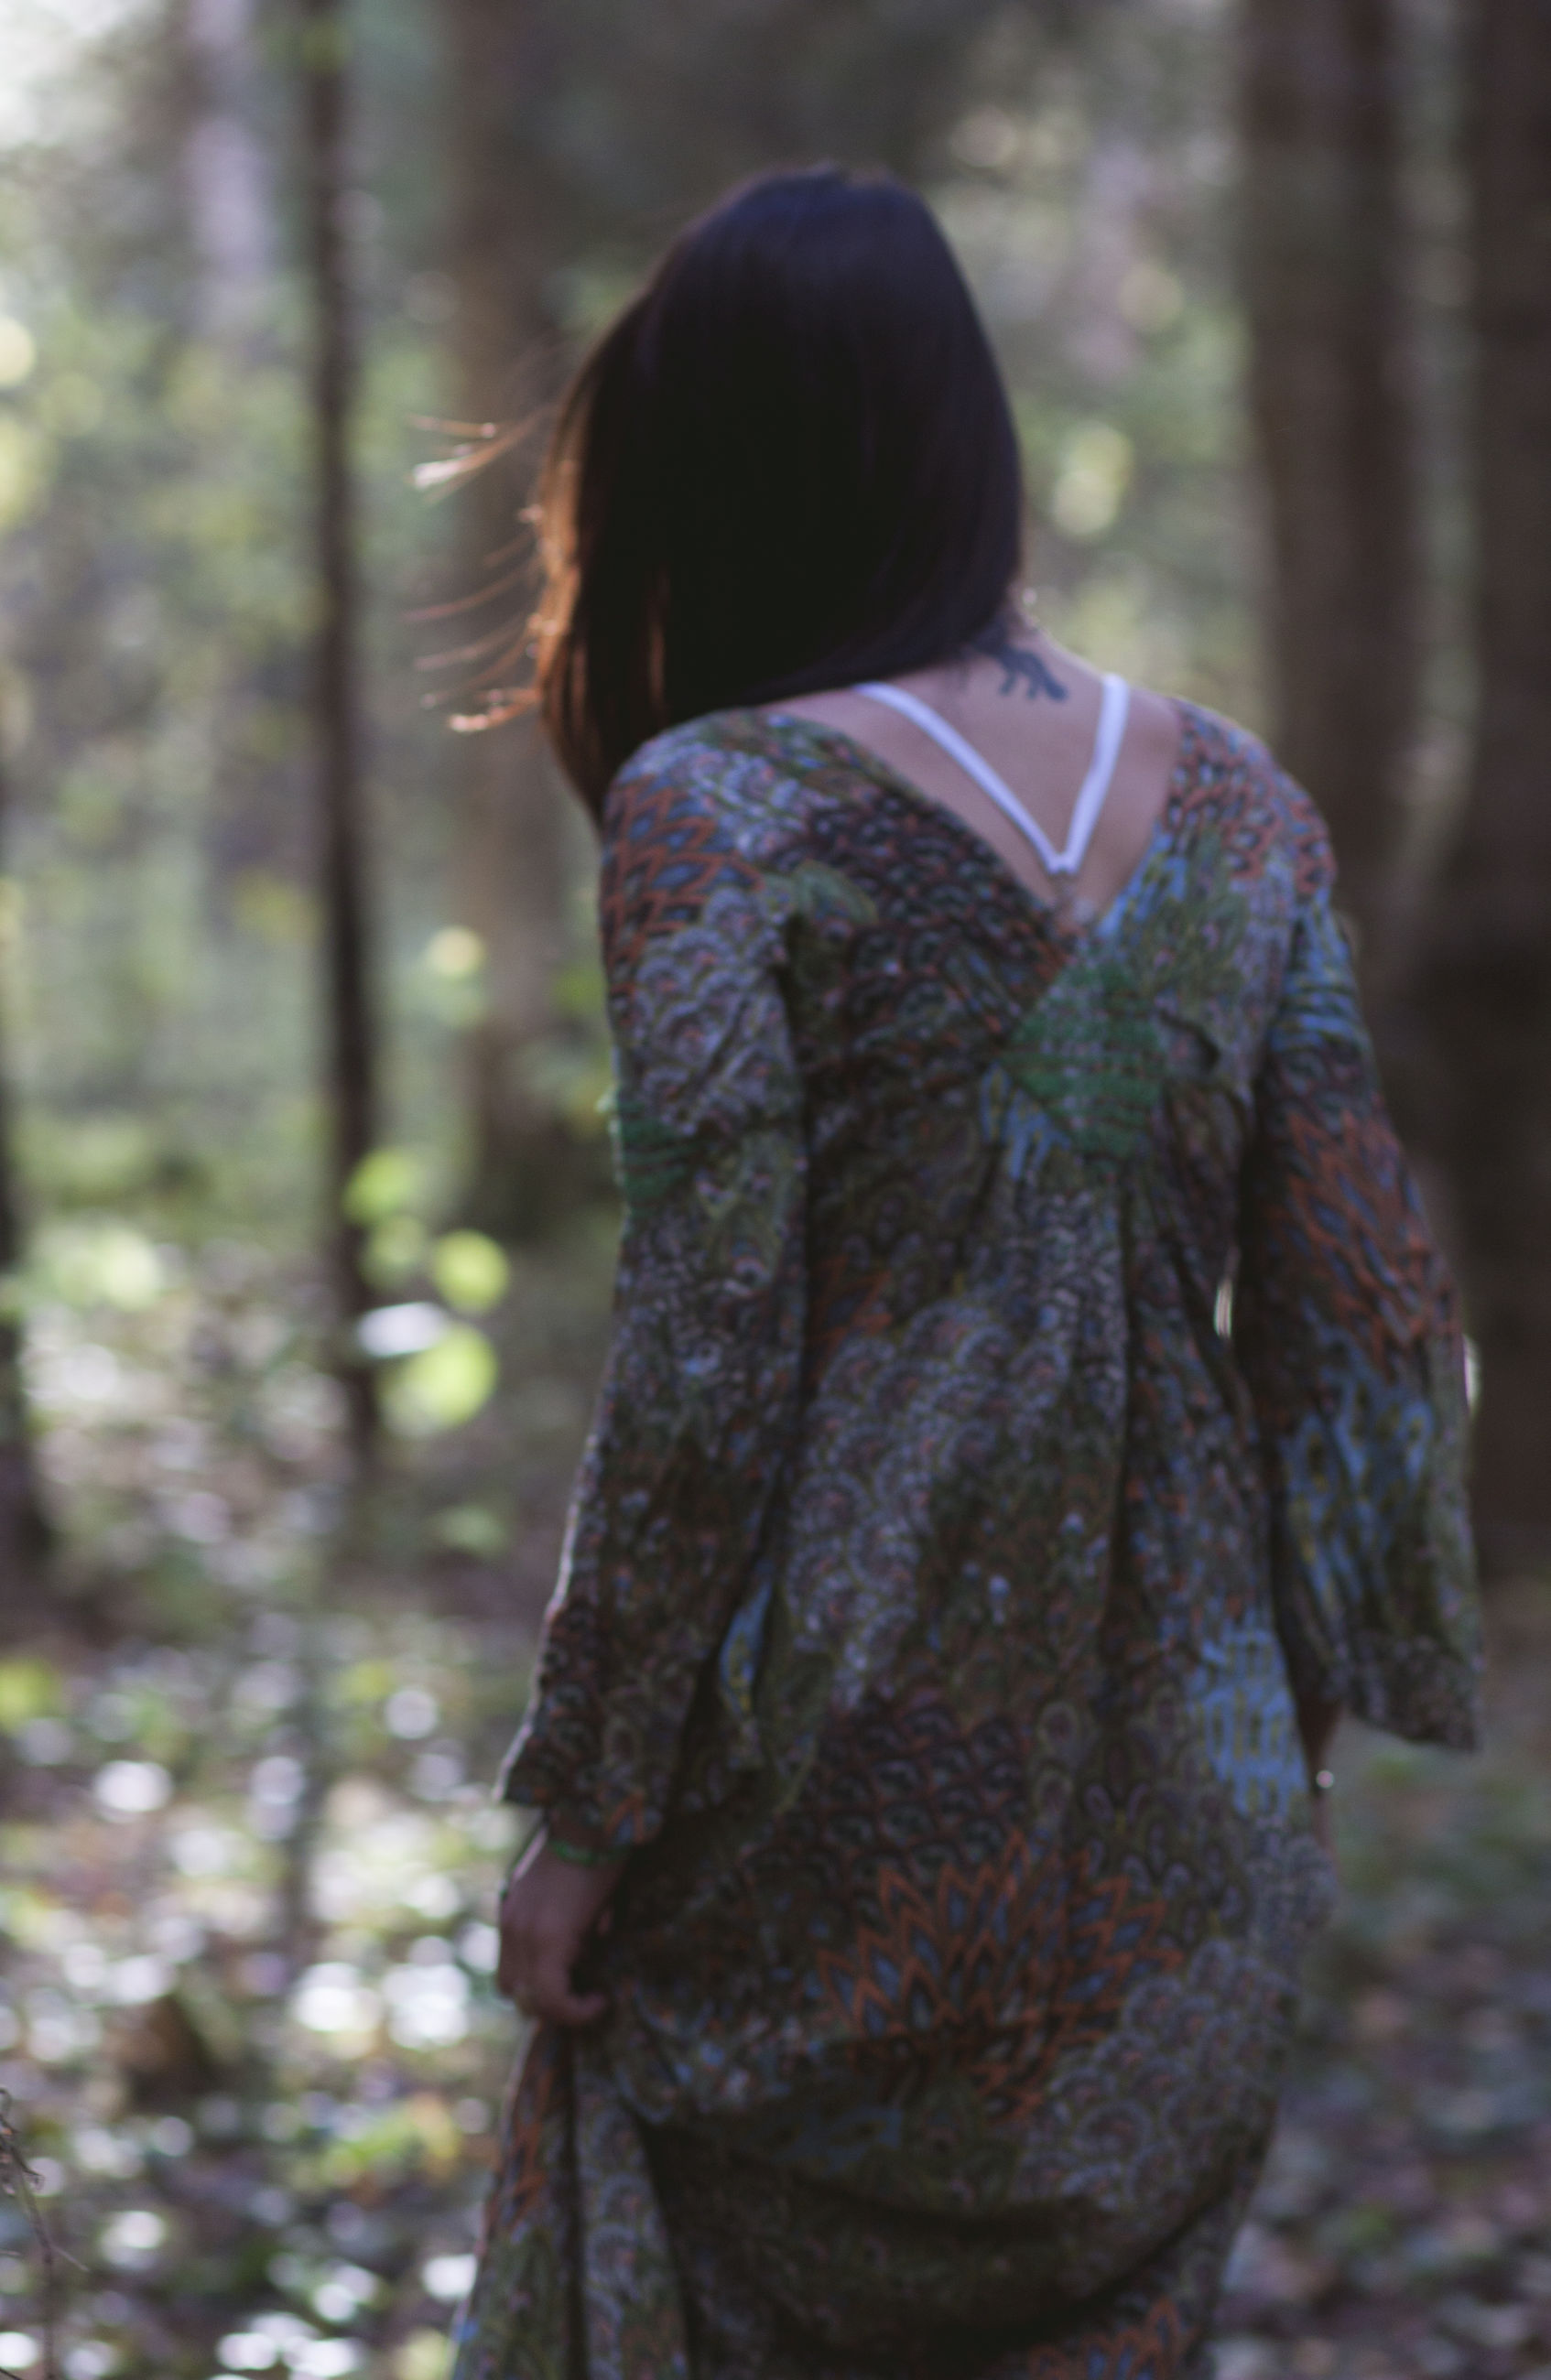 rear view, focus on foreground, person, casual clothing, tree trunk, looking, loneliness, tranquility, solitude